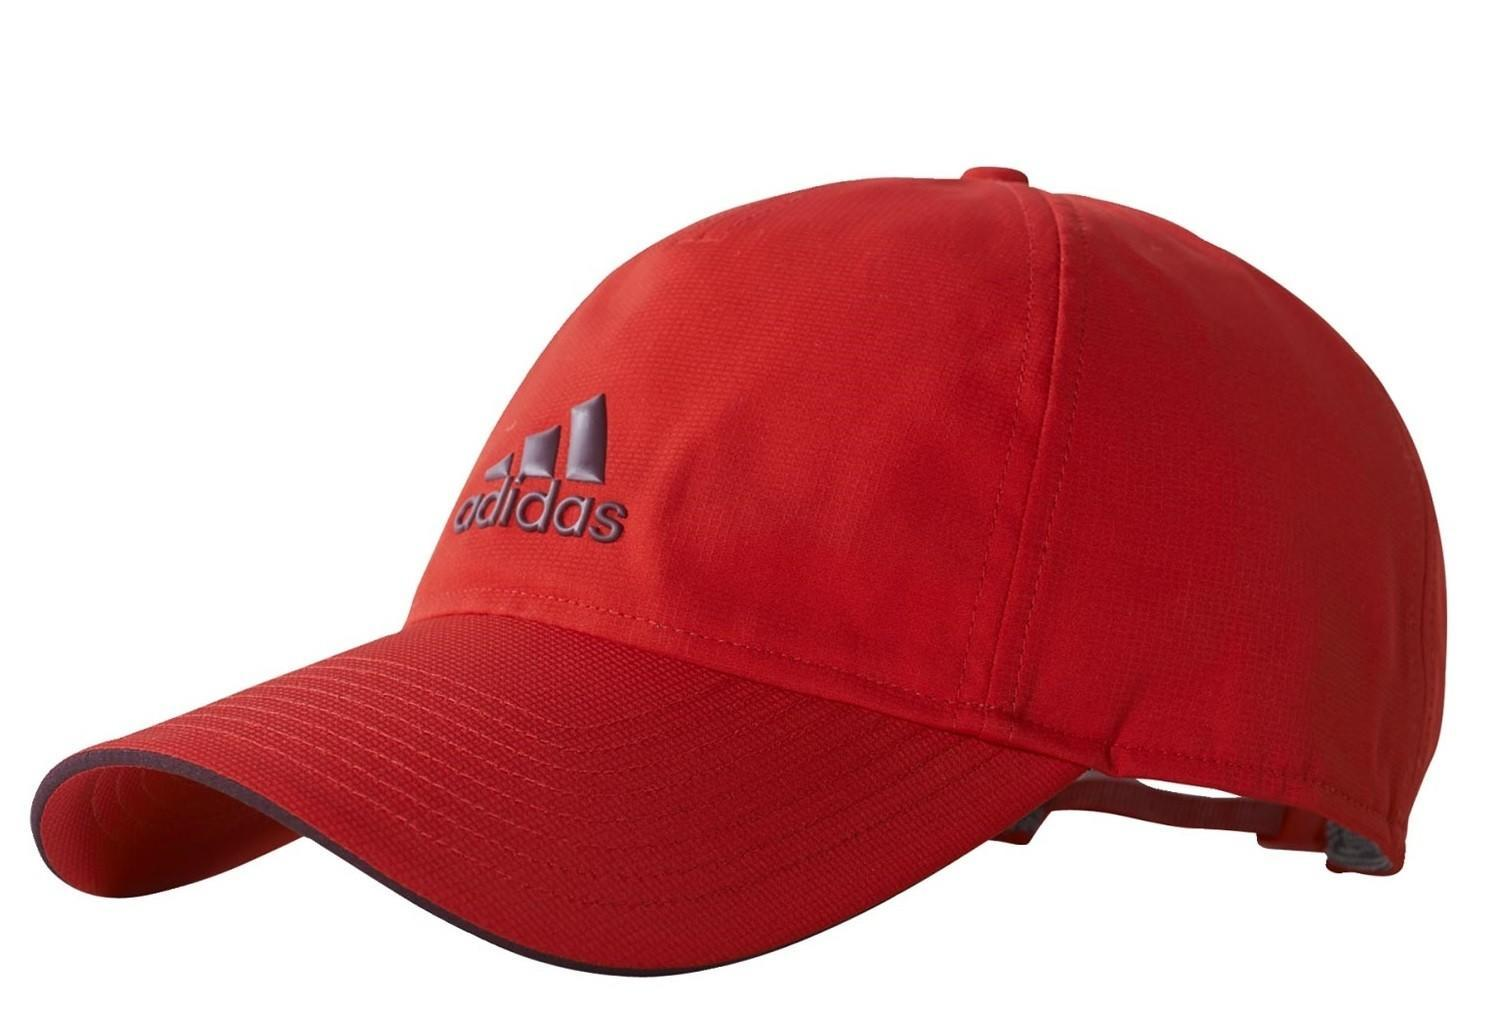 Теннисная кепка Adidas 5 Panel Classic Climalite cap red